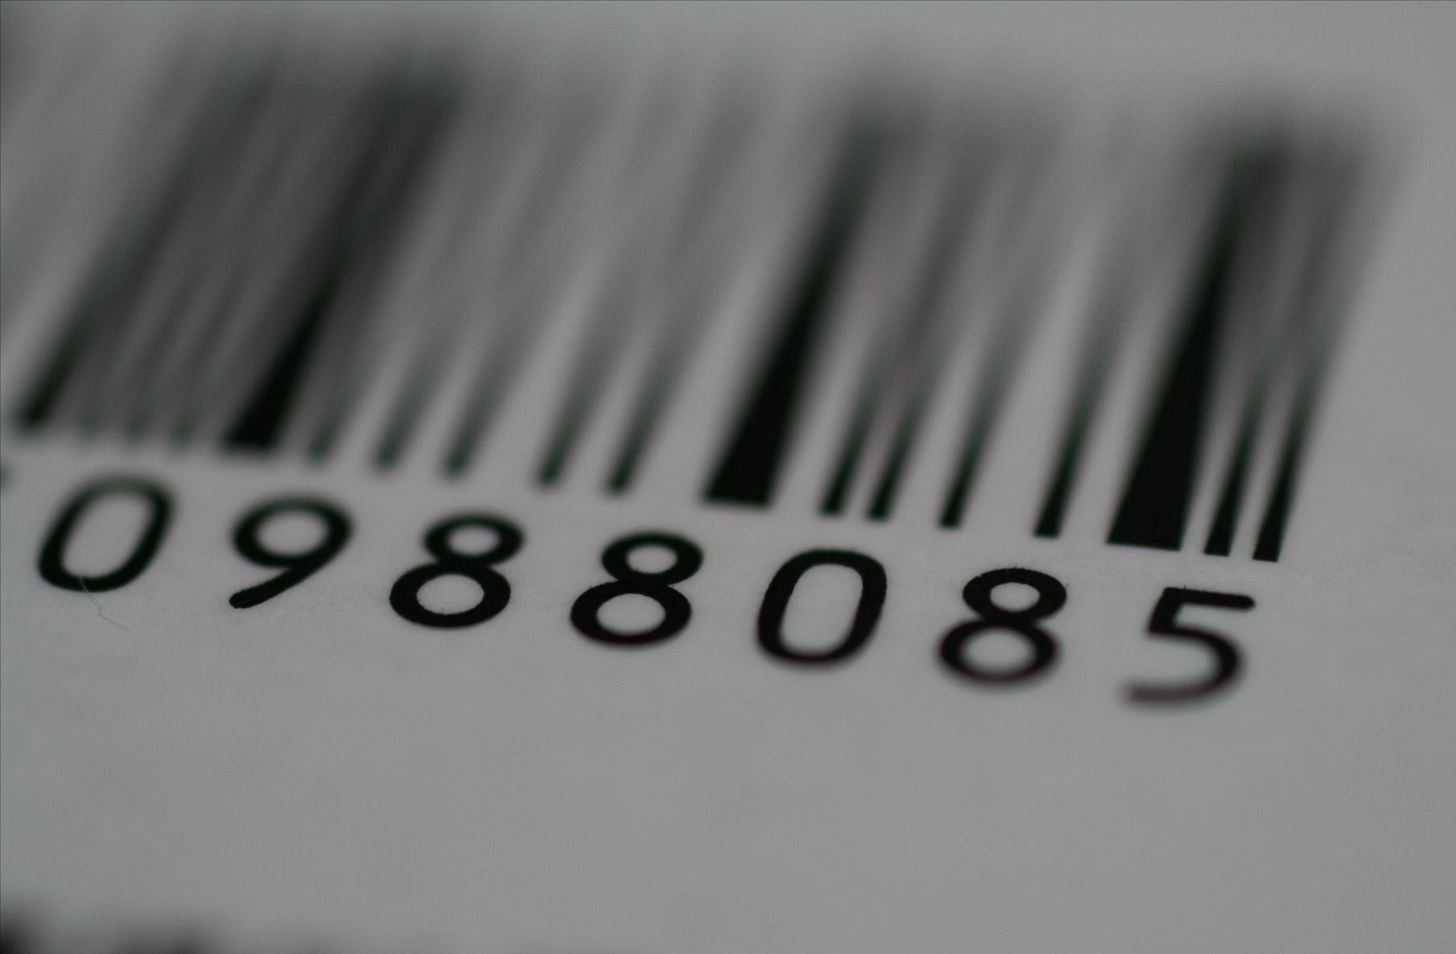 Save Money on Groceries! Scam… Er… Scan Your Own Stuff at Self